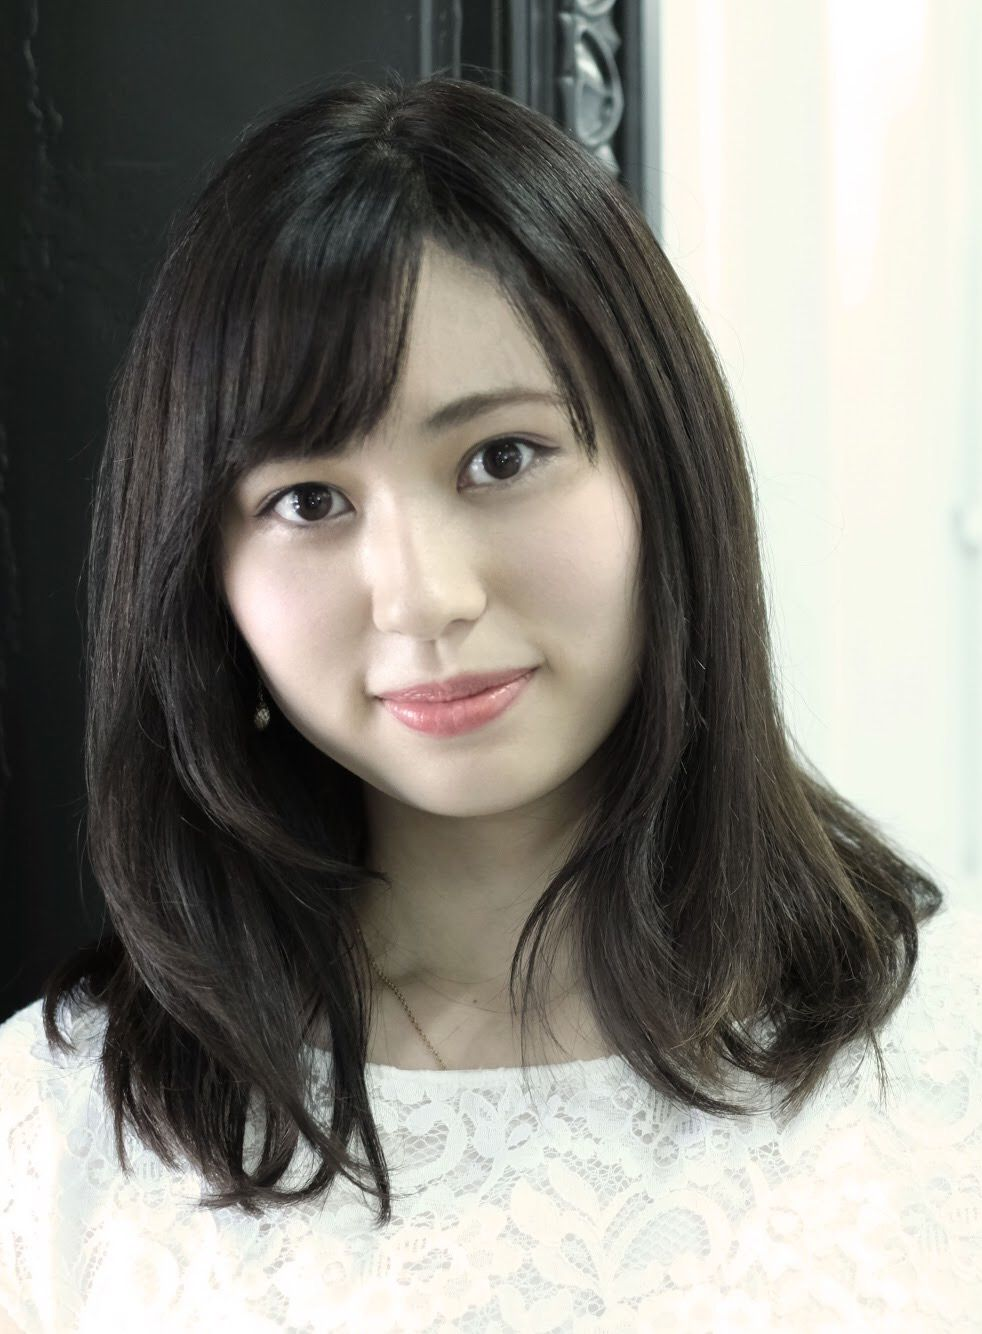 gakushuin2018gakushuin4-ikeda-marika » Just another MISS COLLE BLOG 2018サイト site